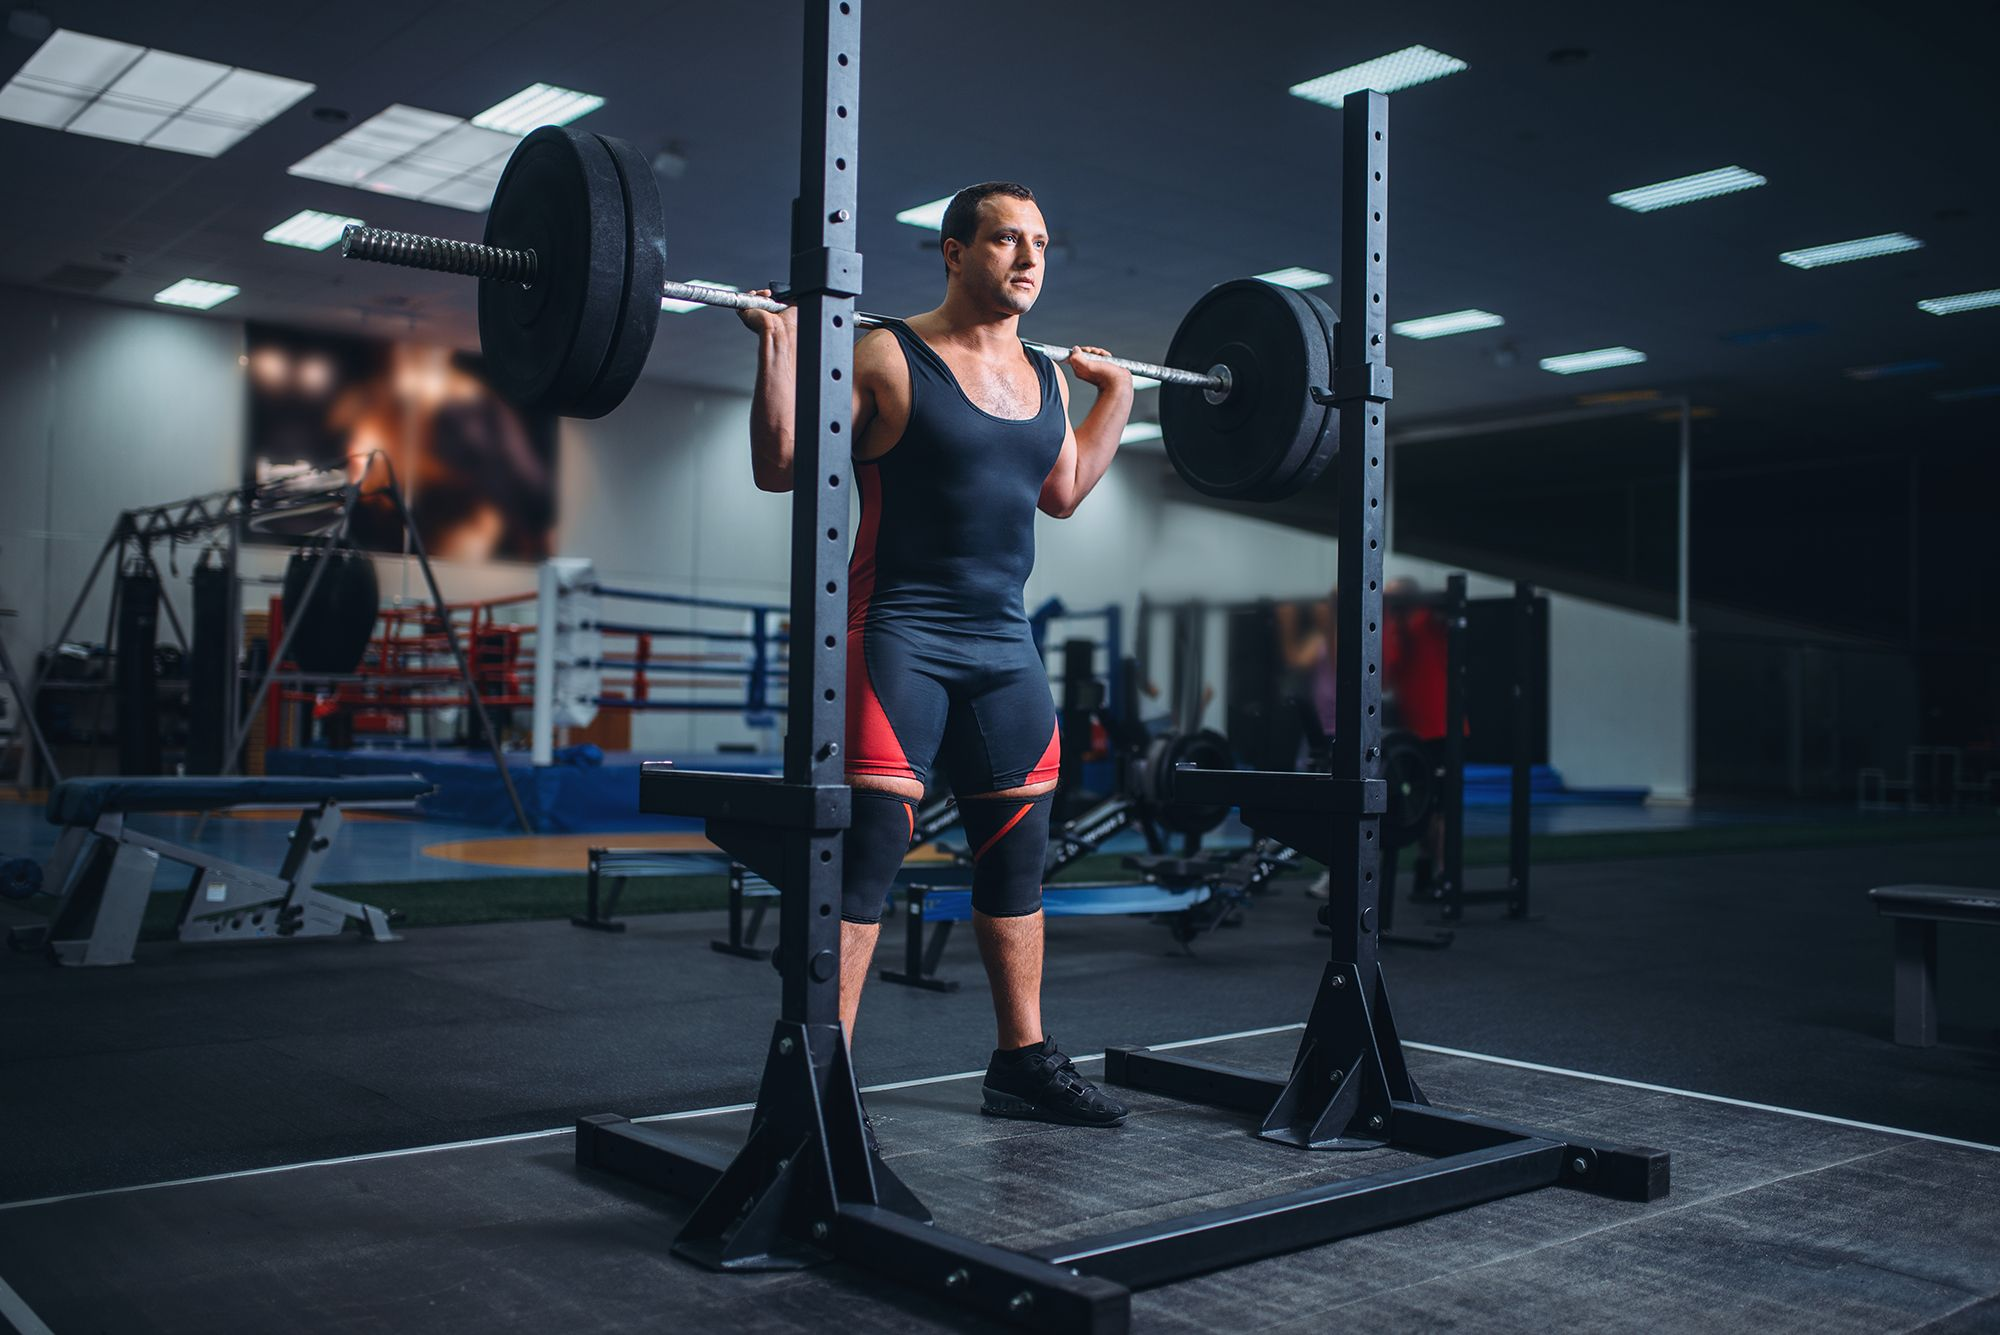 athlete prepares to do squats with barbell